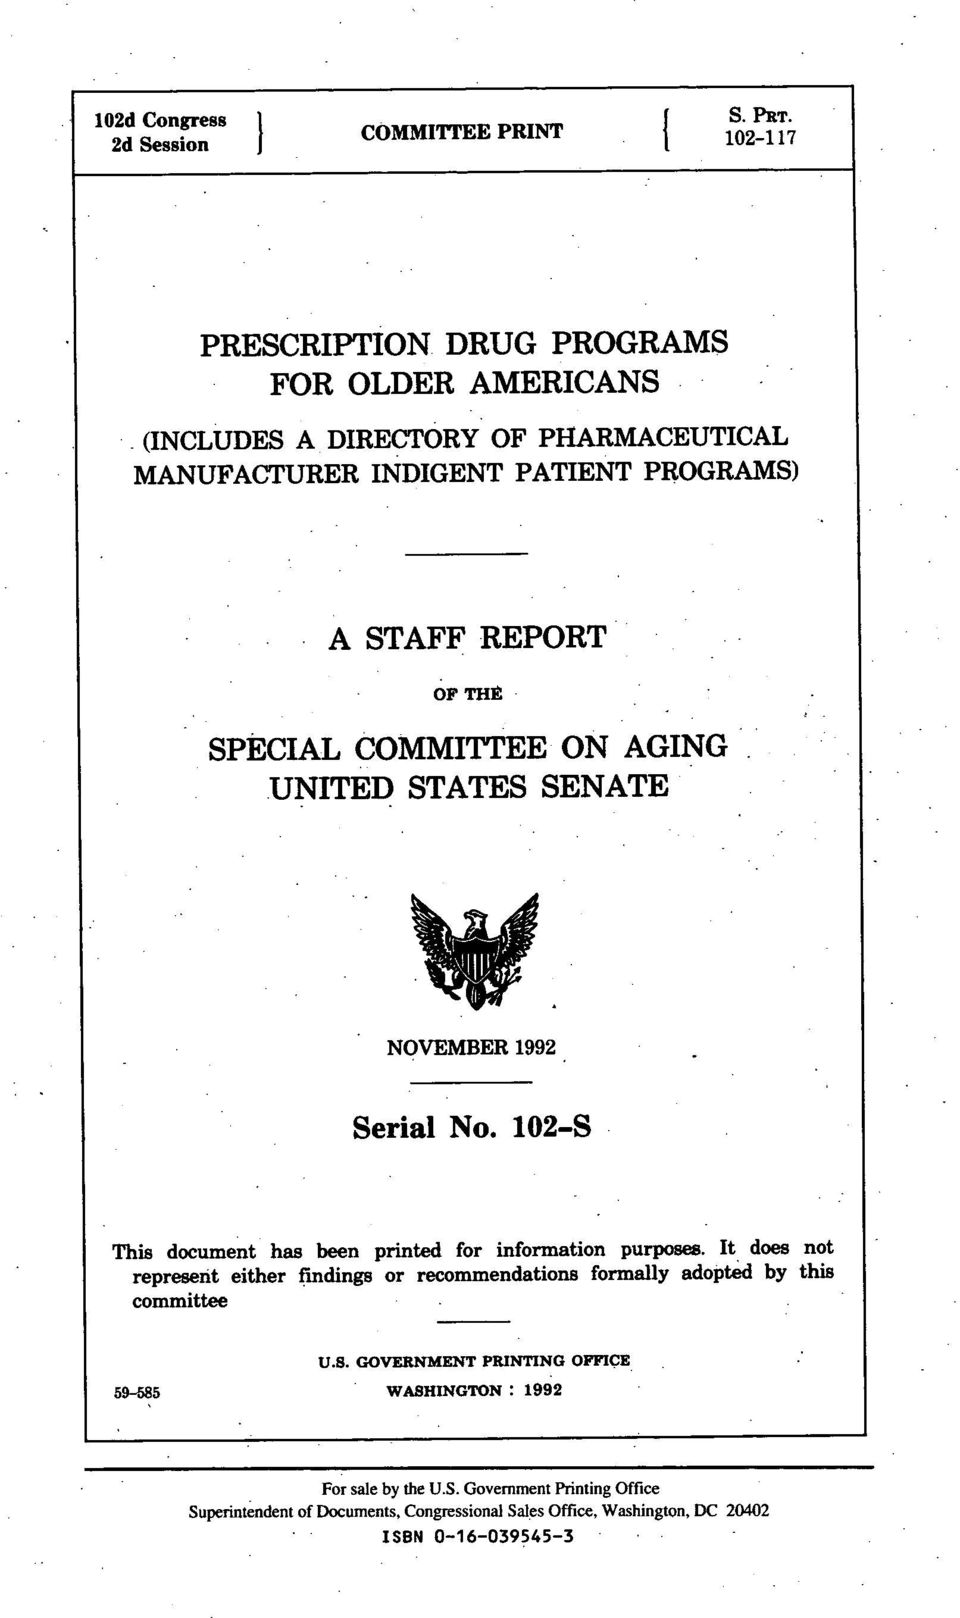 REPORT OF THE SPECIAL COMMITTEE ON AGING UNITED STATES SENATE NOVEMBER 1992. Serial No. 102-S This document has been printed for information purposes.